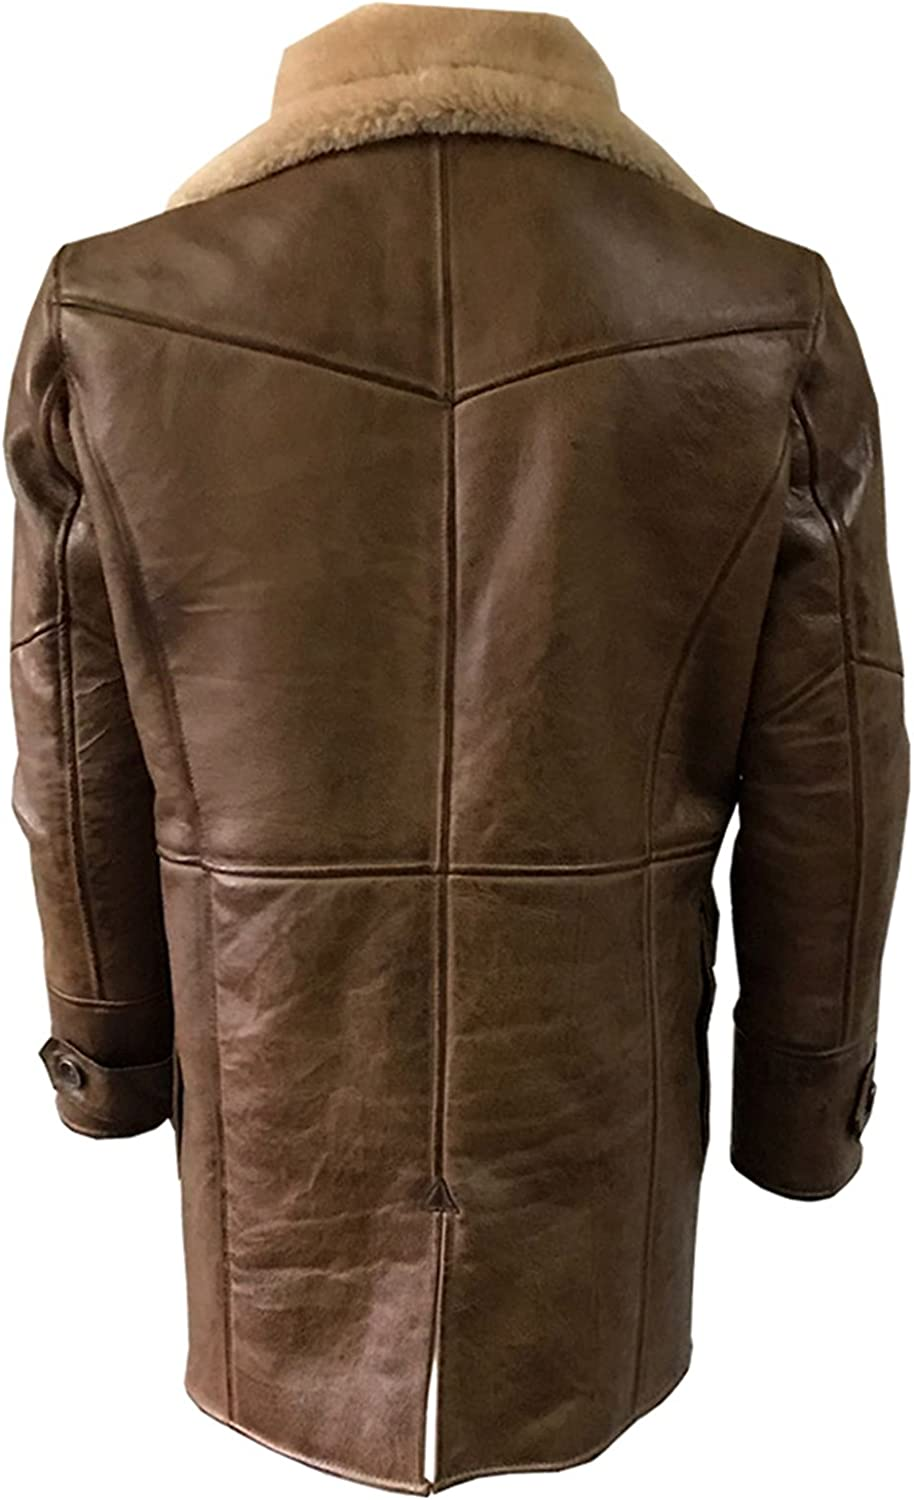 Gen1leather GN1 Shearling Brown Leather Coat